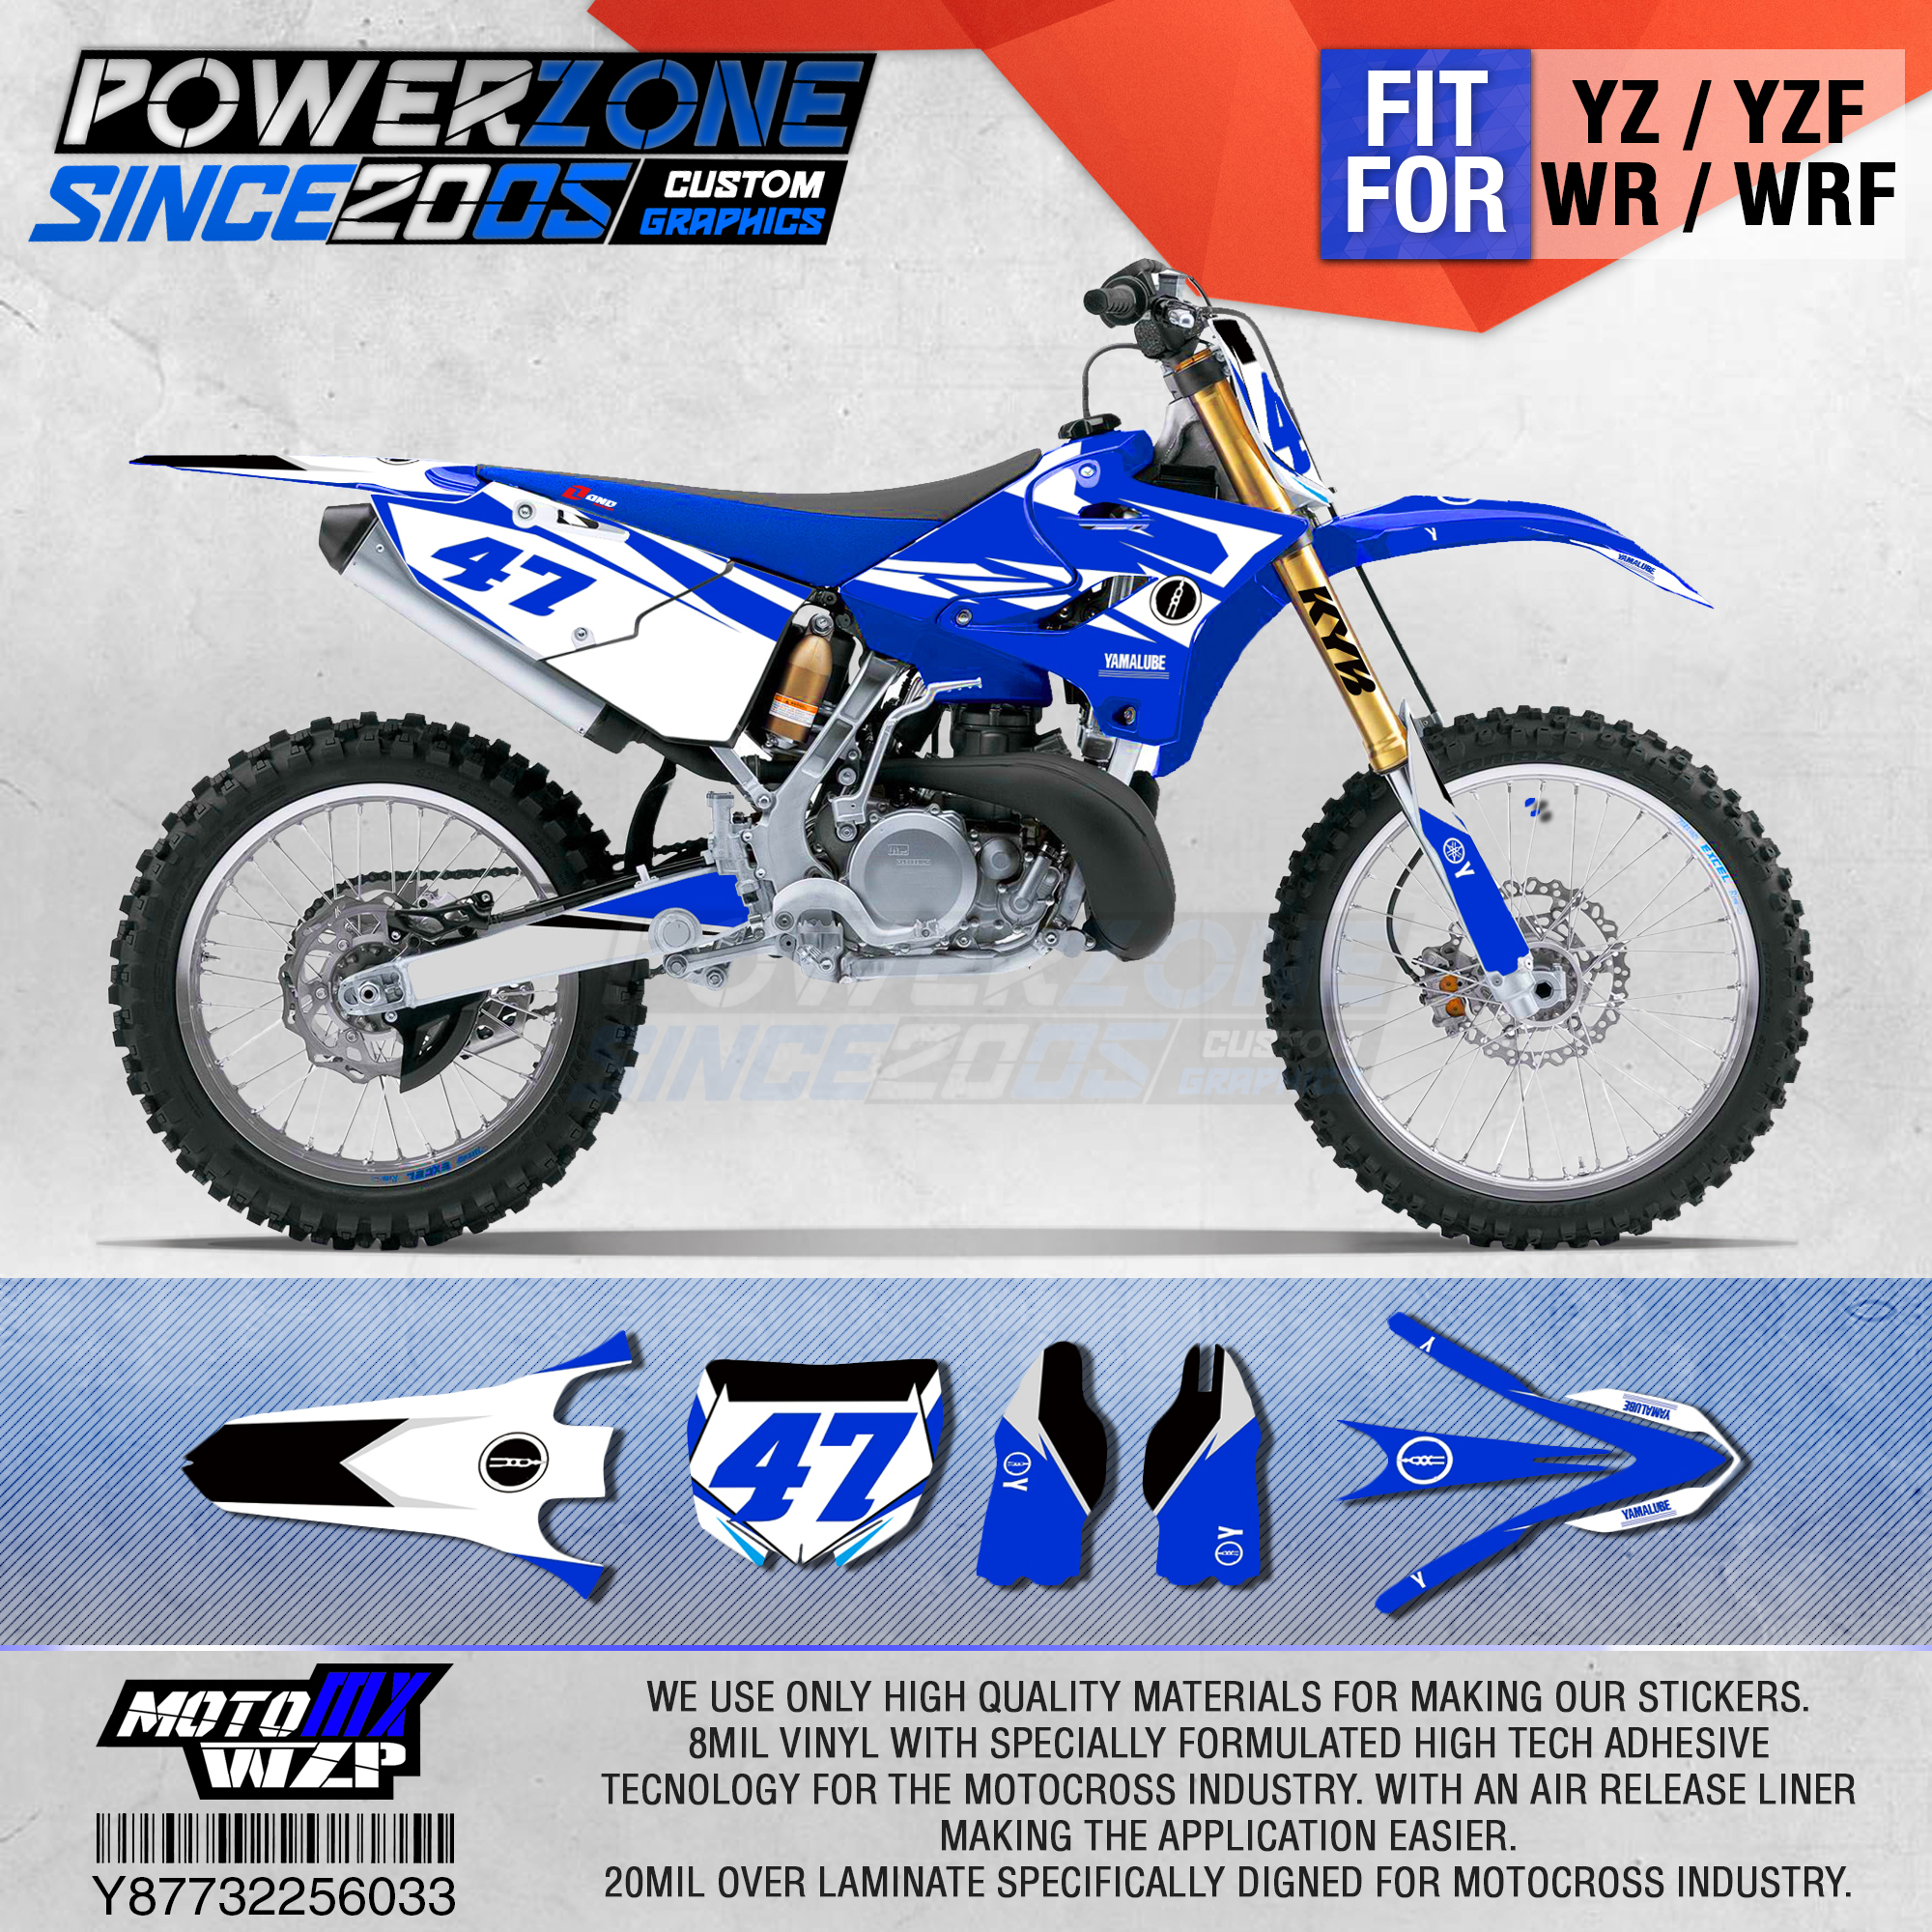 PowerZone Customized Team Graphics Backgrounds Decals 3M Custom Stickers For YAMAHA YZ125/250 X 1996-2001 2002-14 2015-2019 033